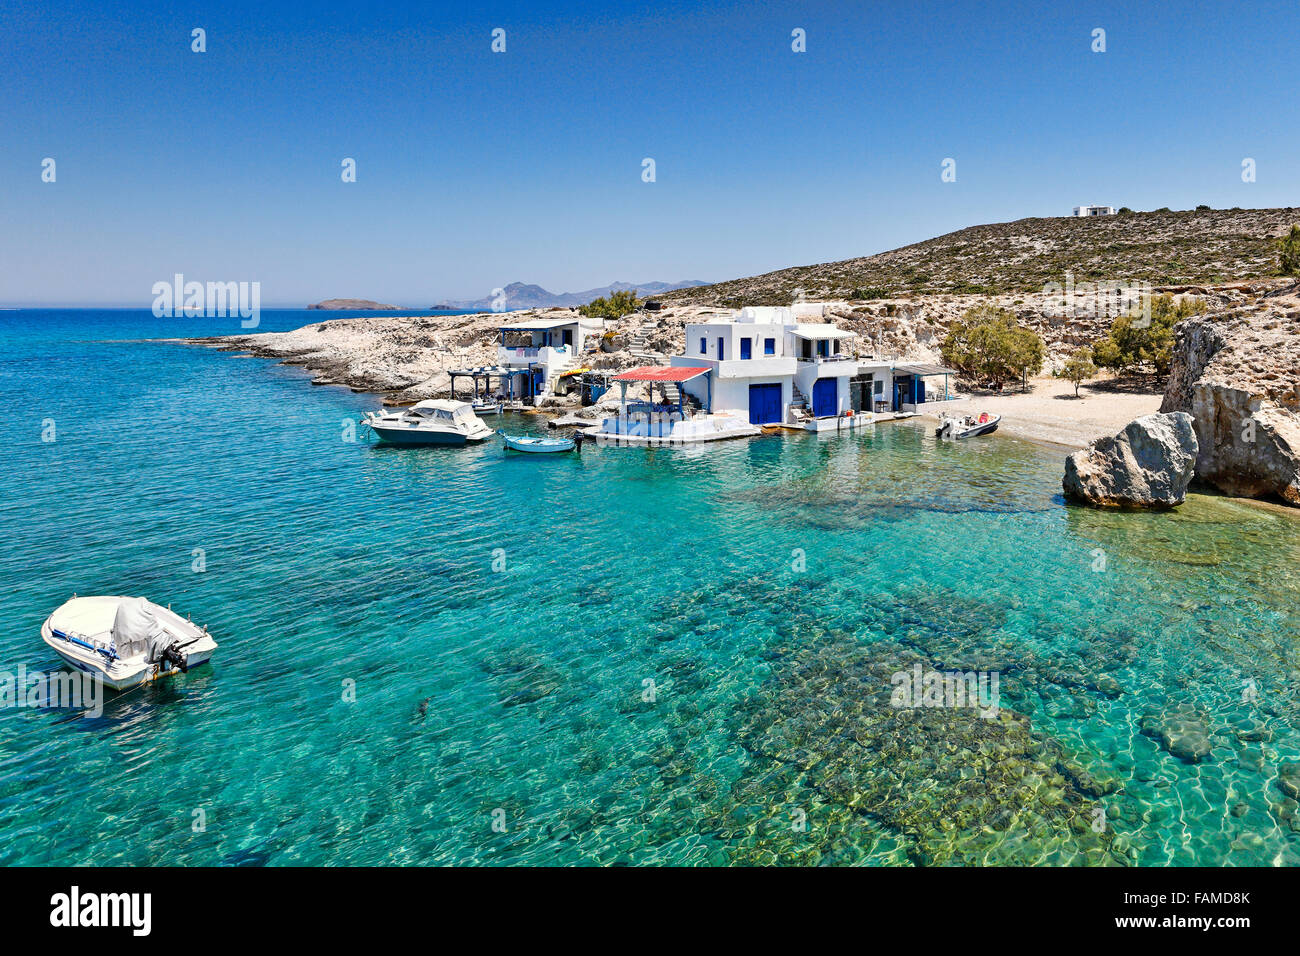 "Traditional fishermen houses with the impressive boat shelters, also known as ""syrmata"" in Mytakas of Milos, Greece - Stock Image"